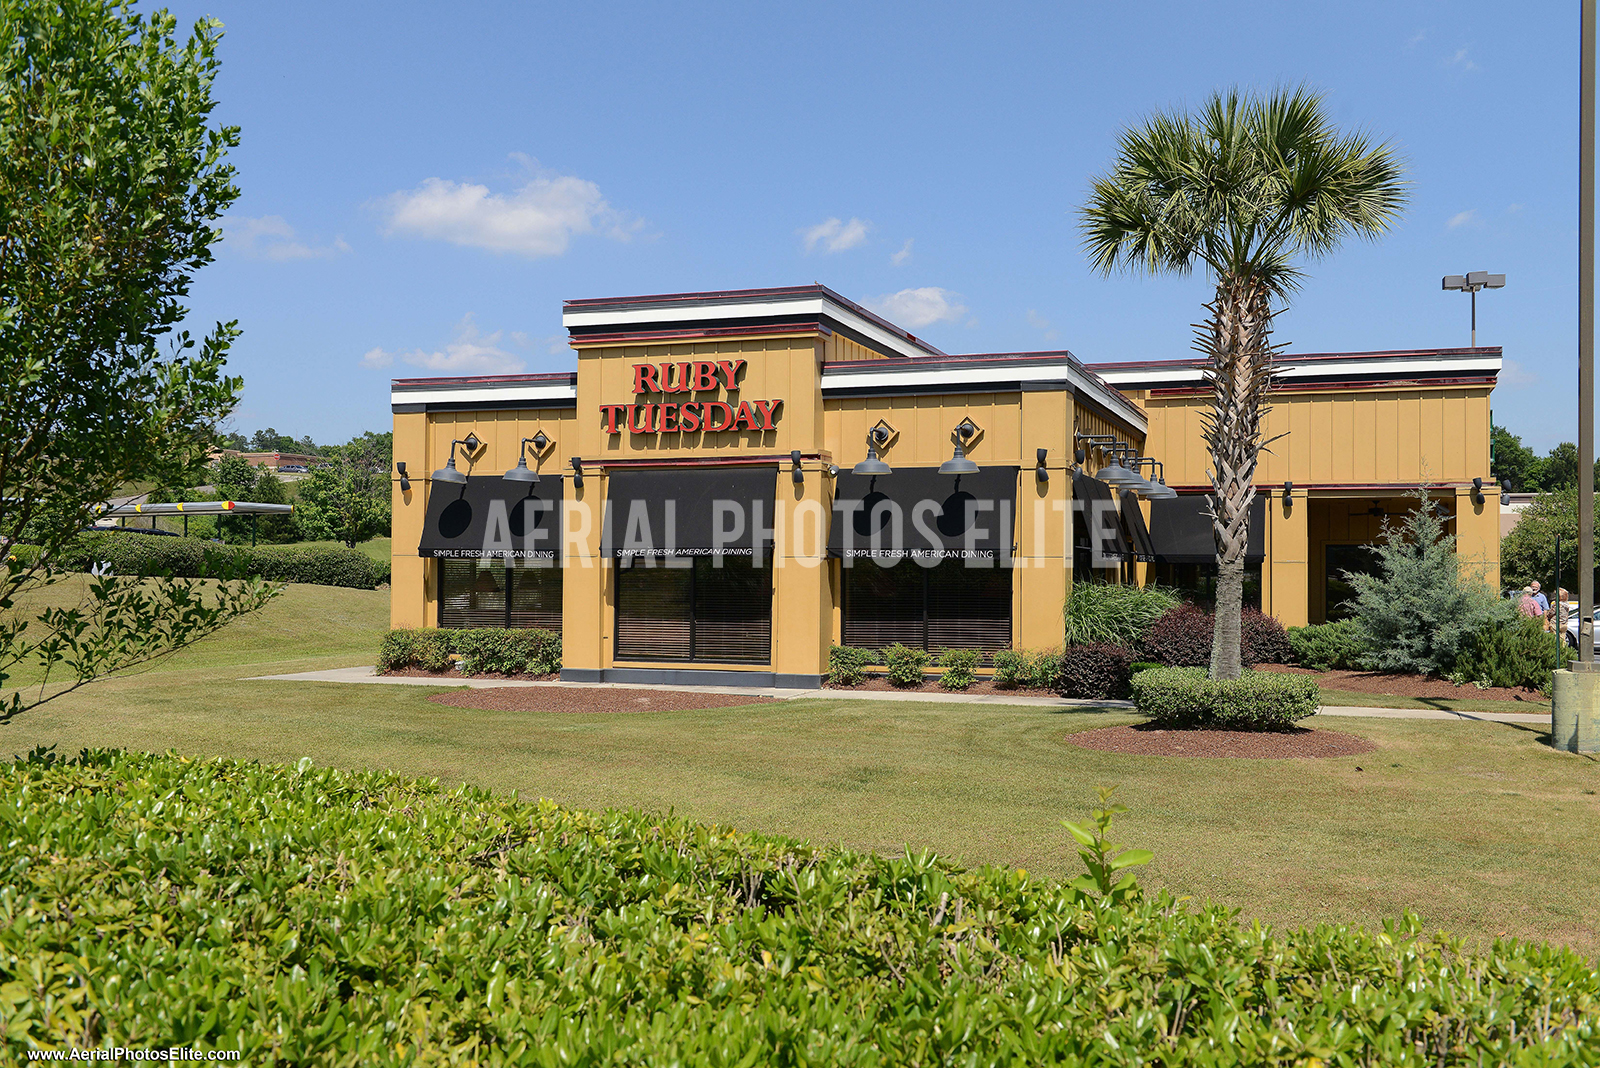 Ruby Tuesday North Augusta SC | Aerial Photos Elite